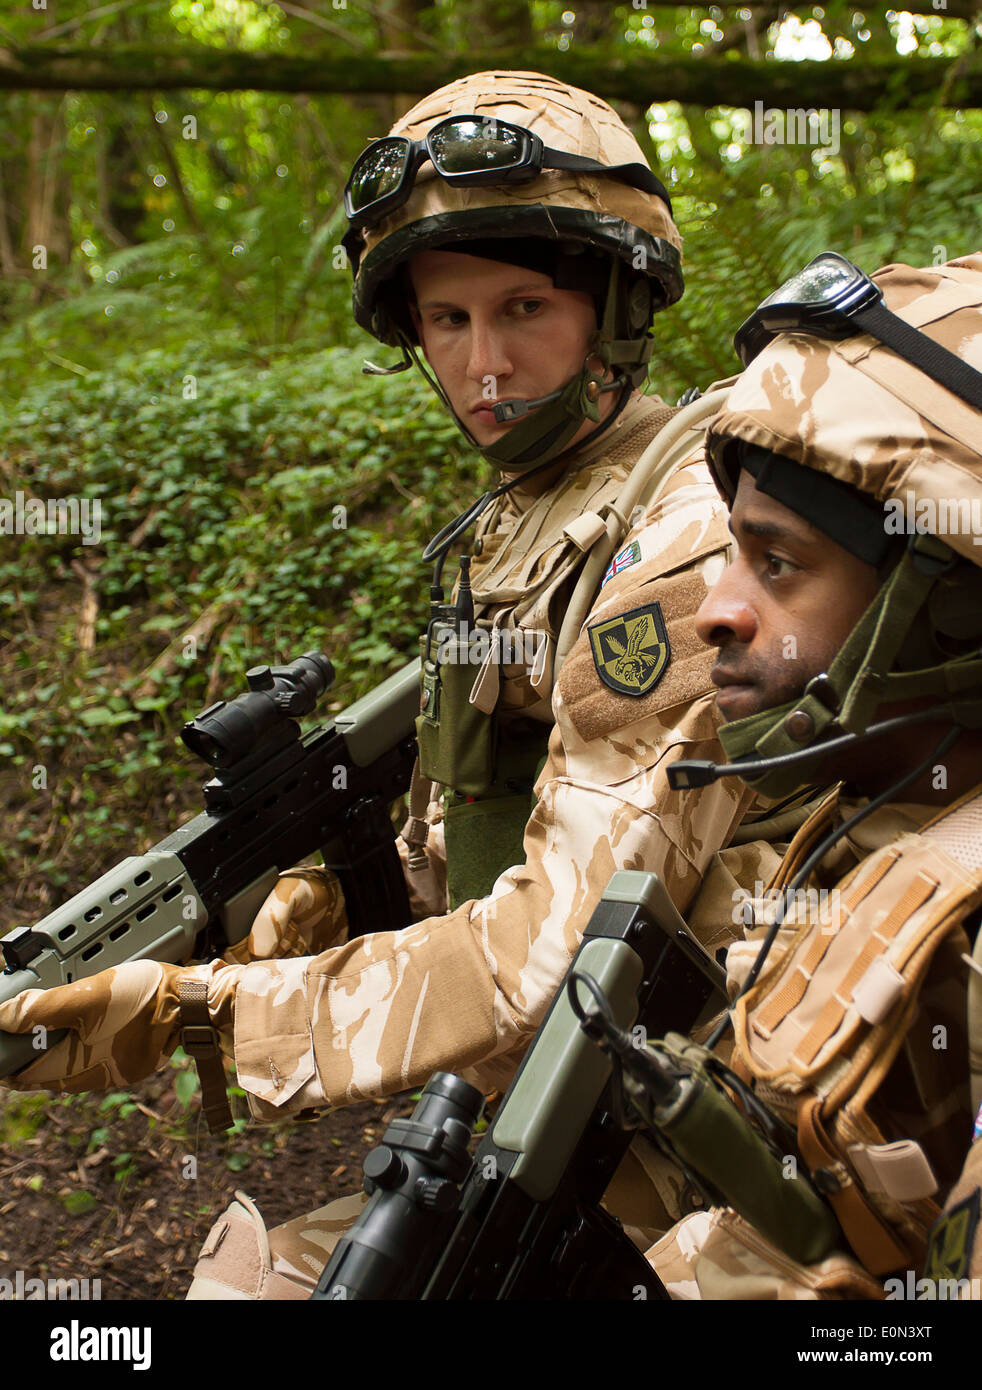 Soldiers in full British Army uniform on armed patrol - Stock Image